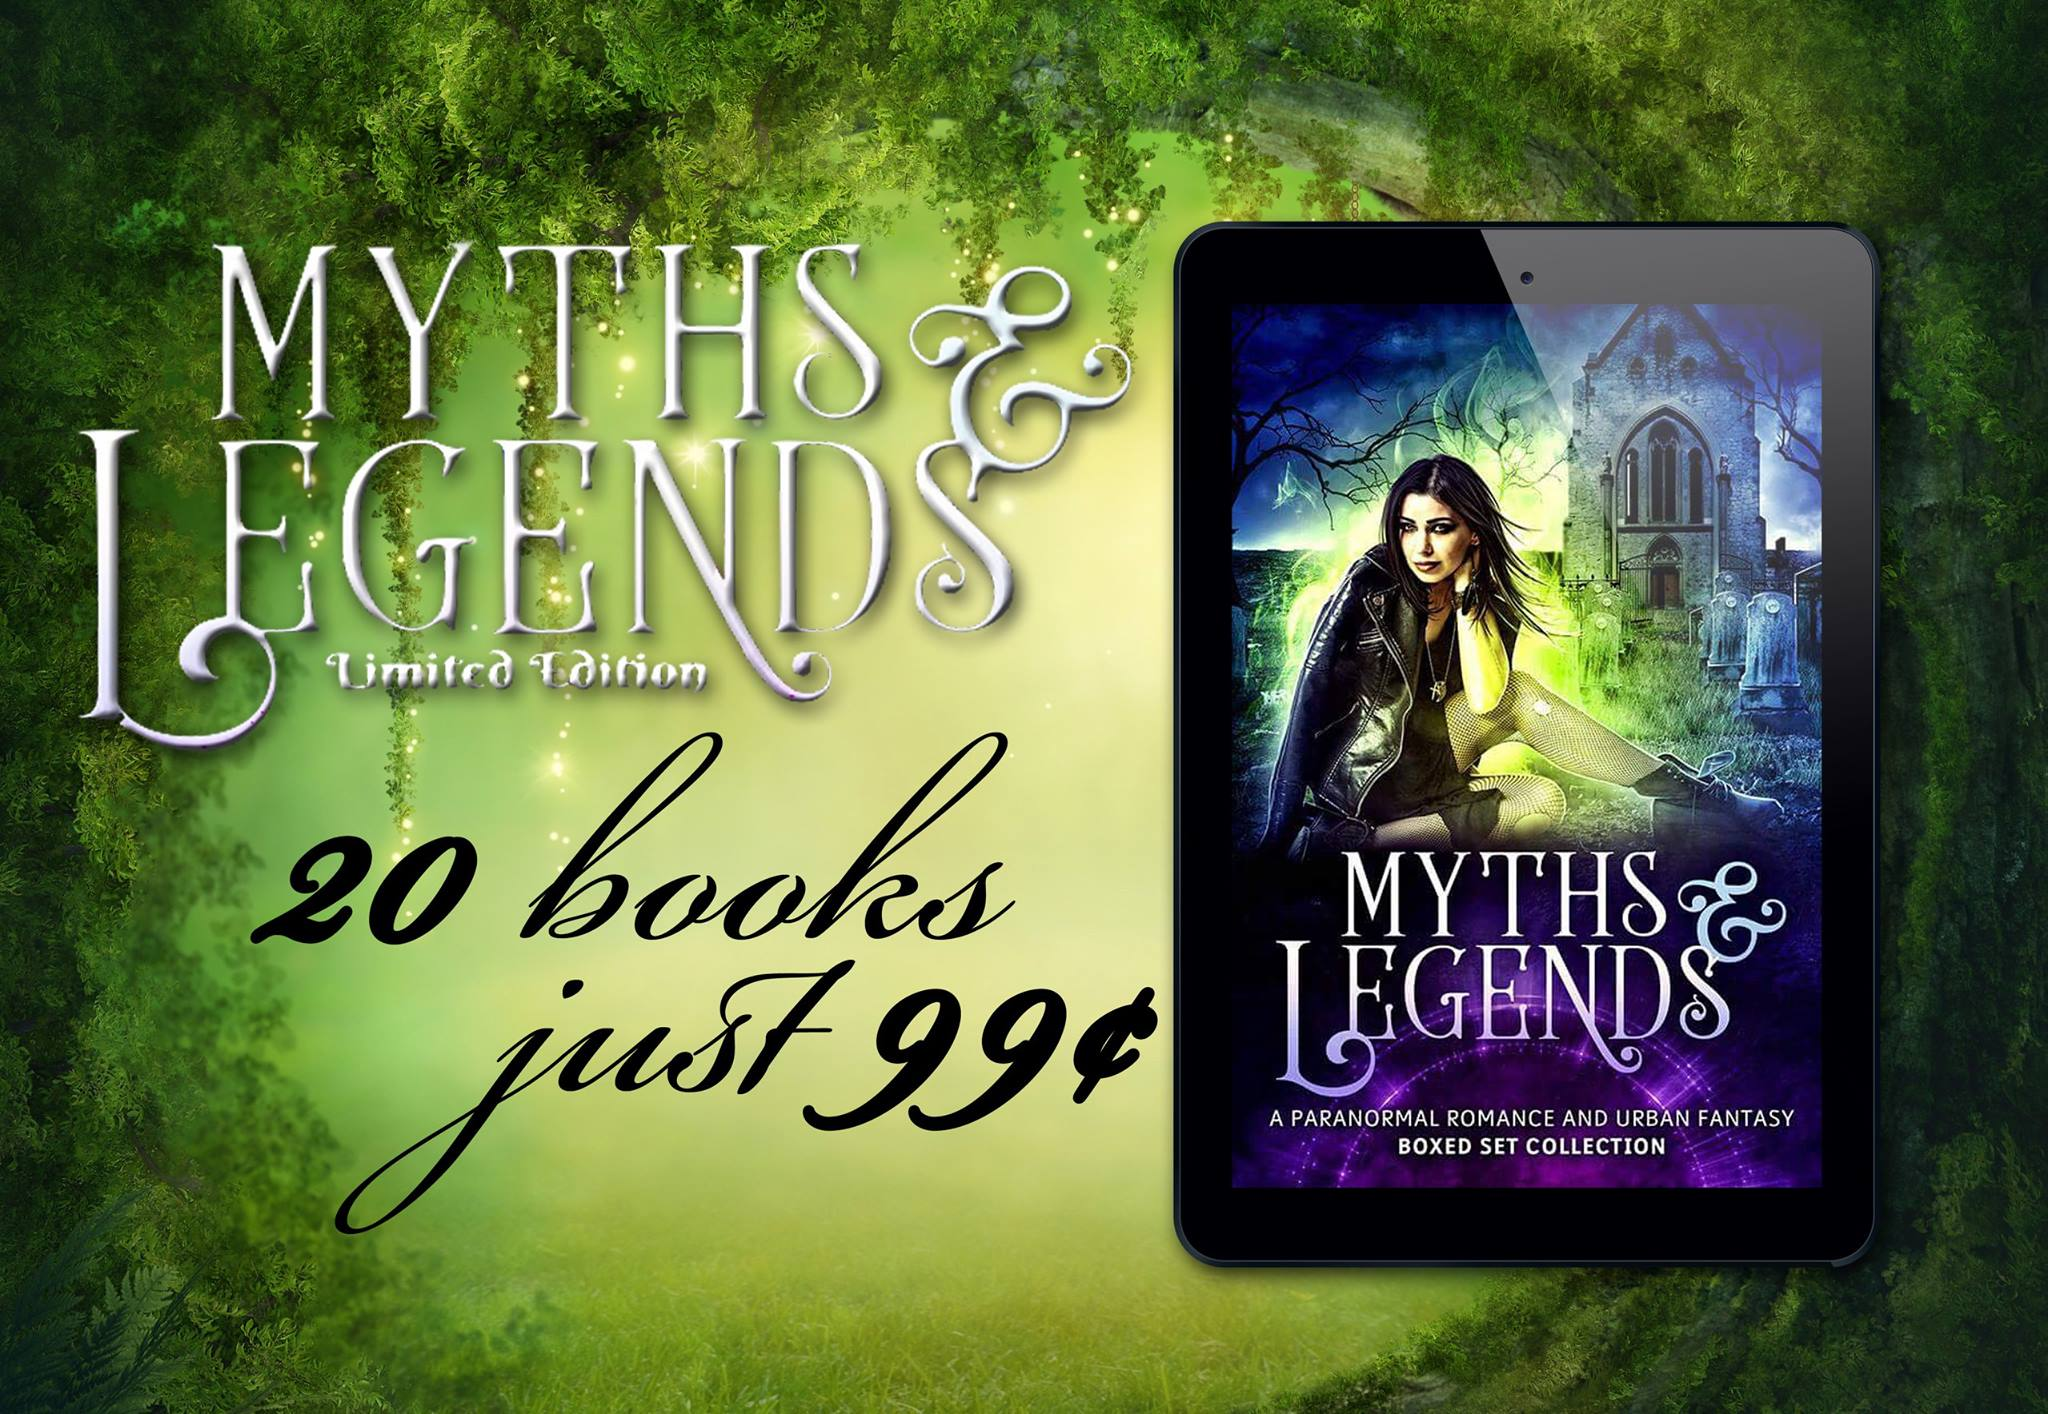 Myths & Legends Is Here